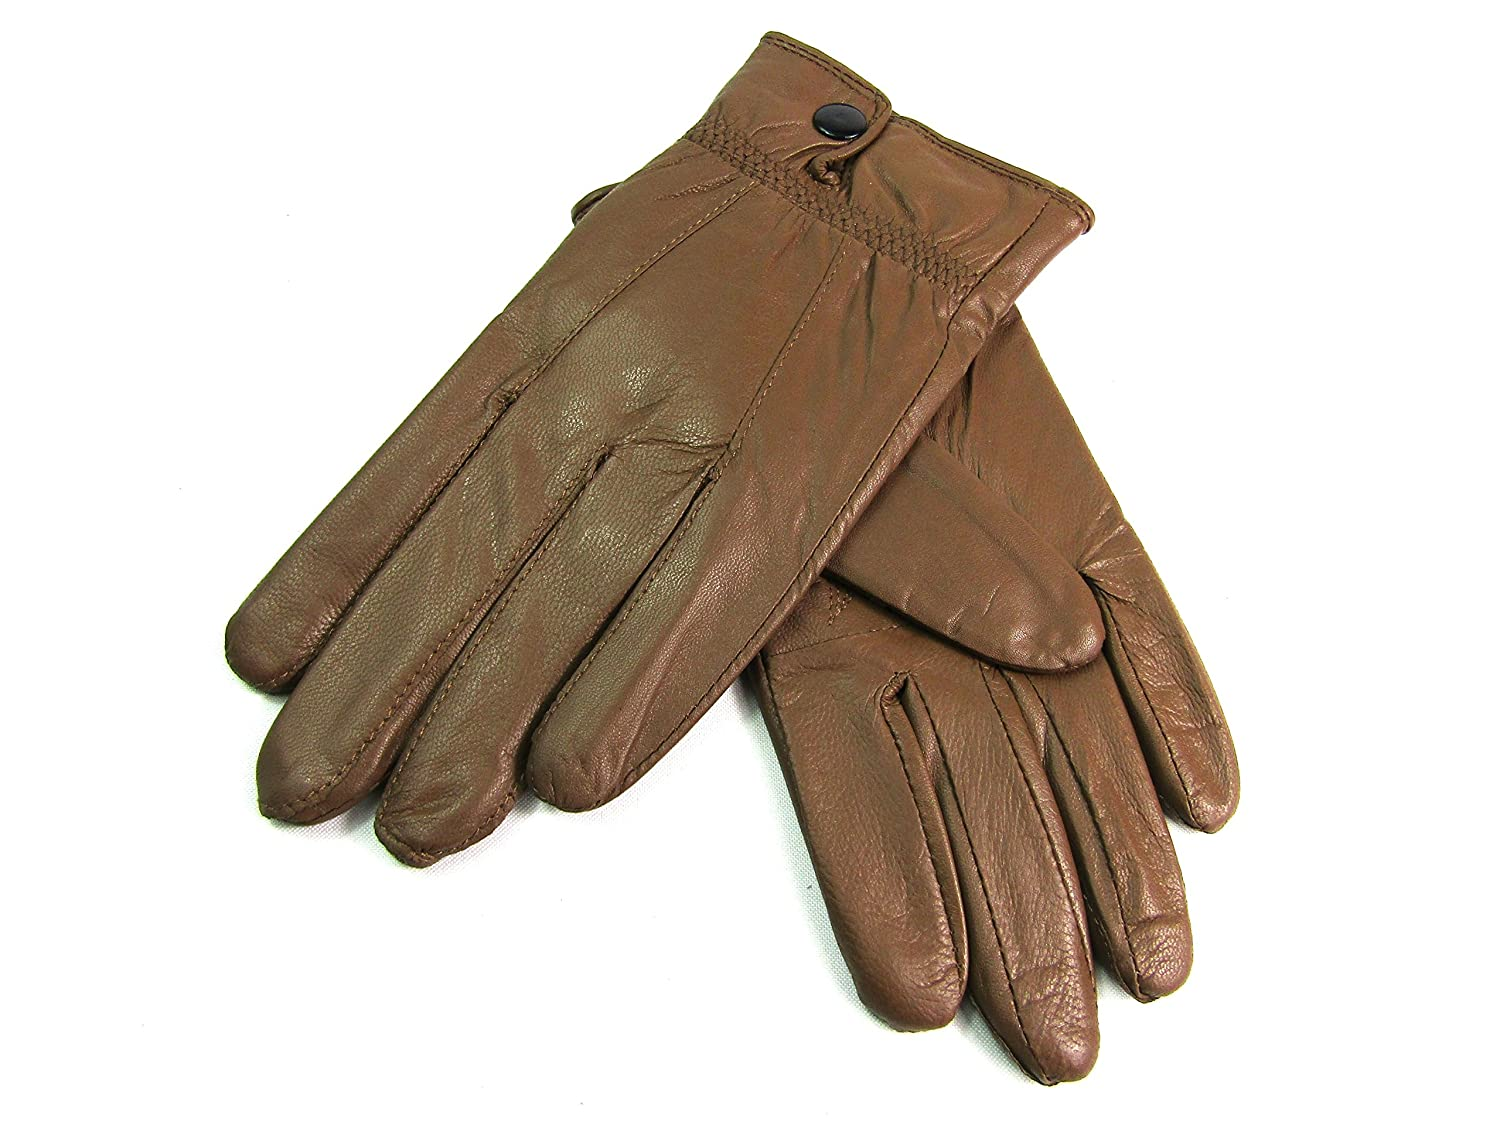 Blue leather gloves ladies uk - Ladies New Soft Leather Fully Lined Gloves By Lorenz 8910 Small Brown Amazon Co Uk Clothing